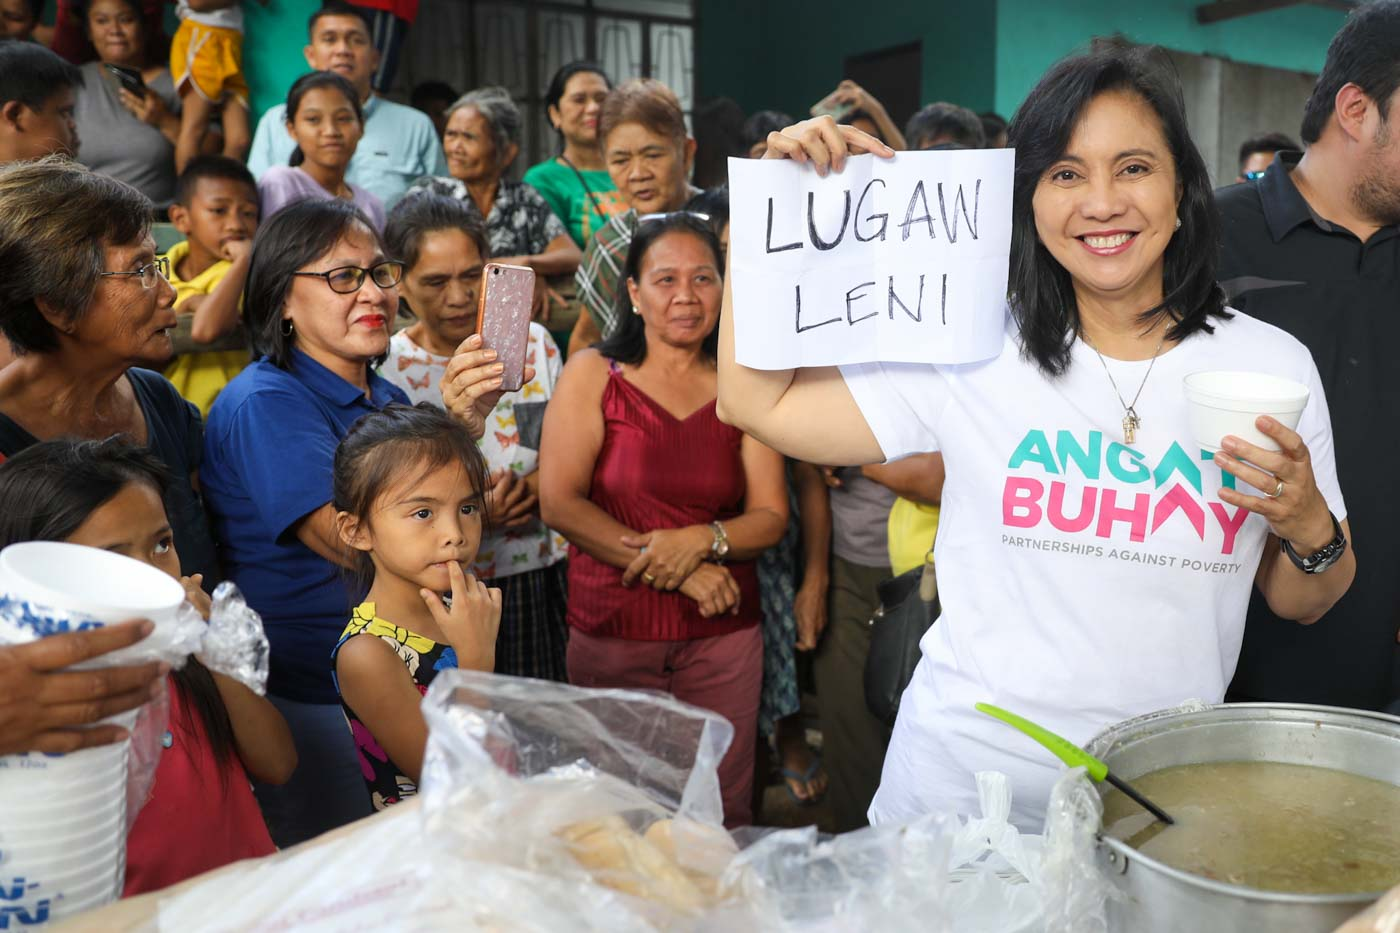 'LUGAW LENI.' Vice President Leni Robredo holds up the u0022Lugaw Leniu0022 sign during her visit to Barangay Bolbok, Tuy, Batangas on January 21, 2020. Photo by Charlie Villegas/OVP